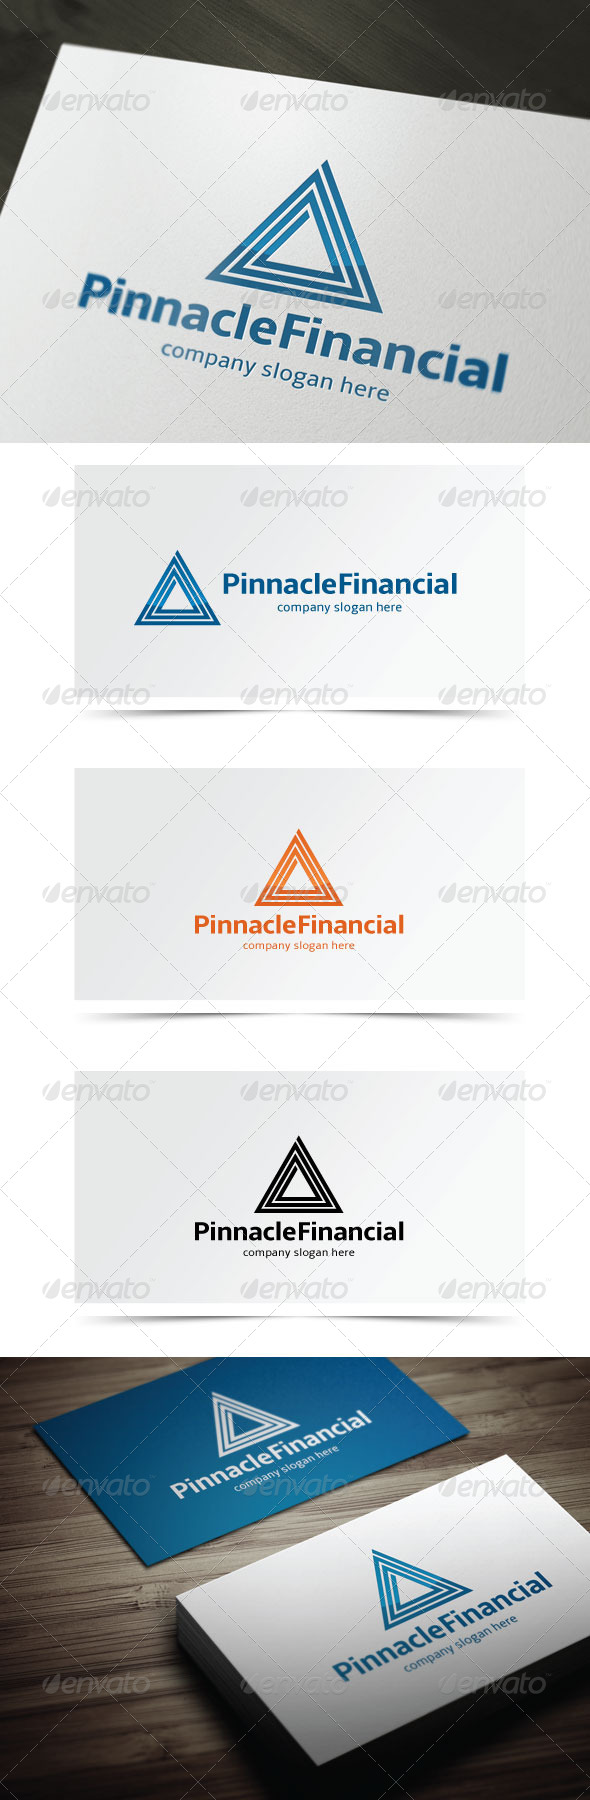 GraphicRiver Pinnacle Financial 5682552